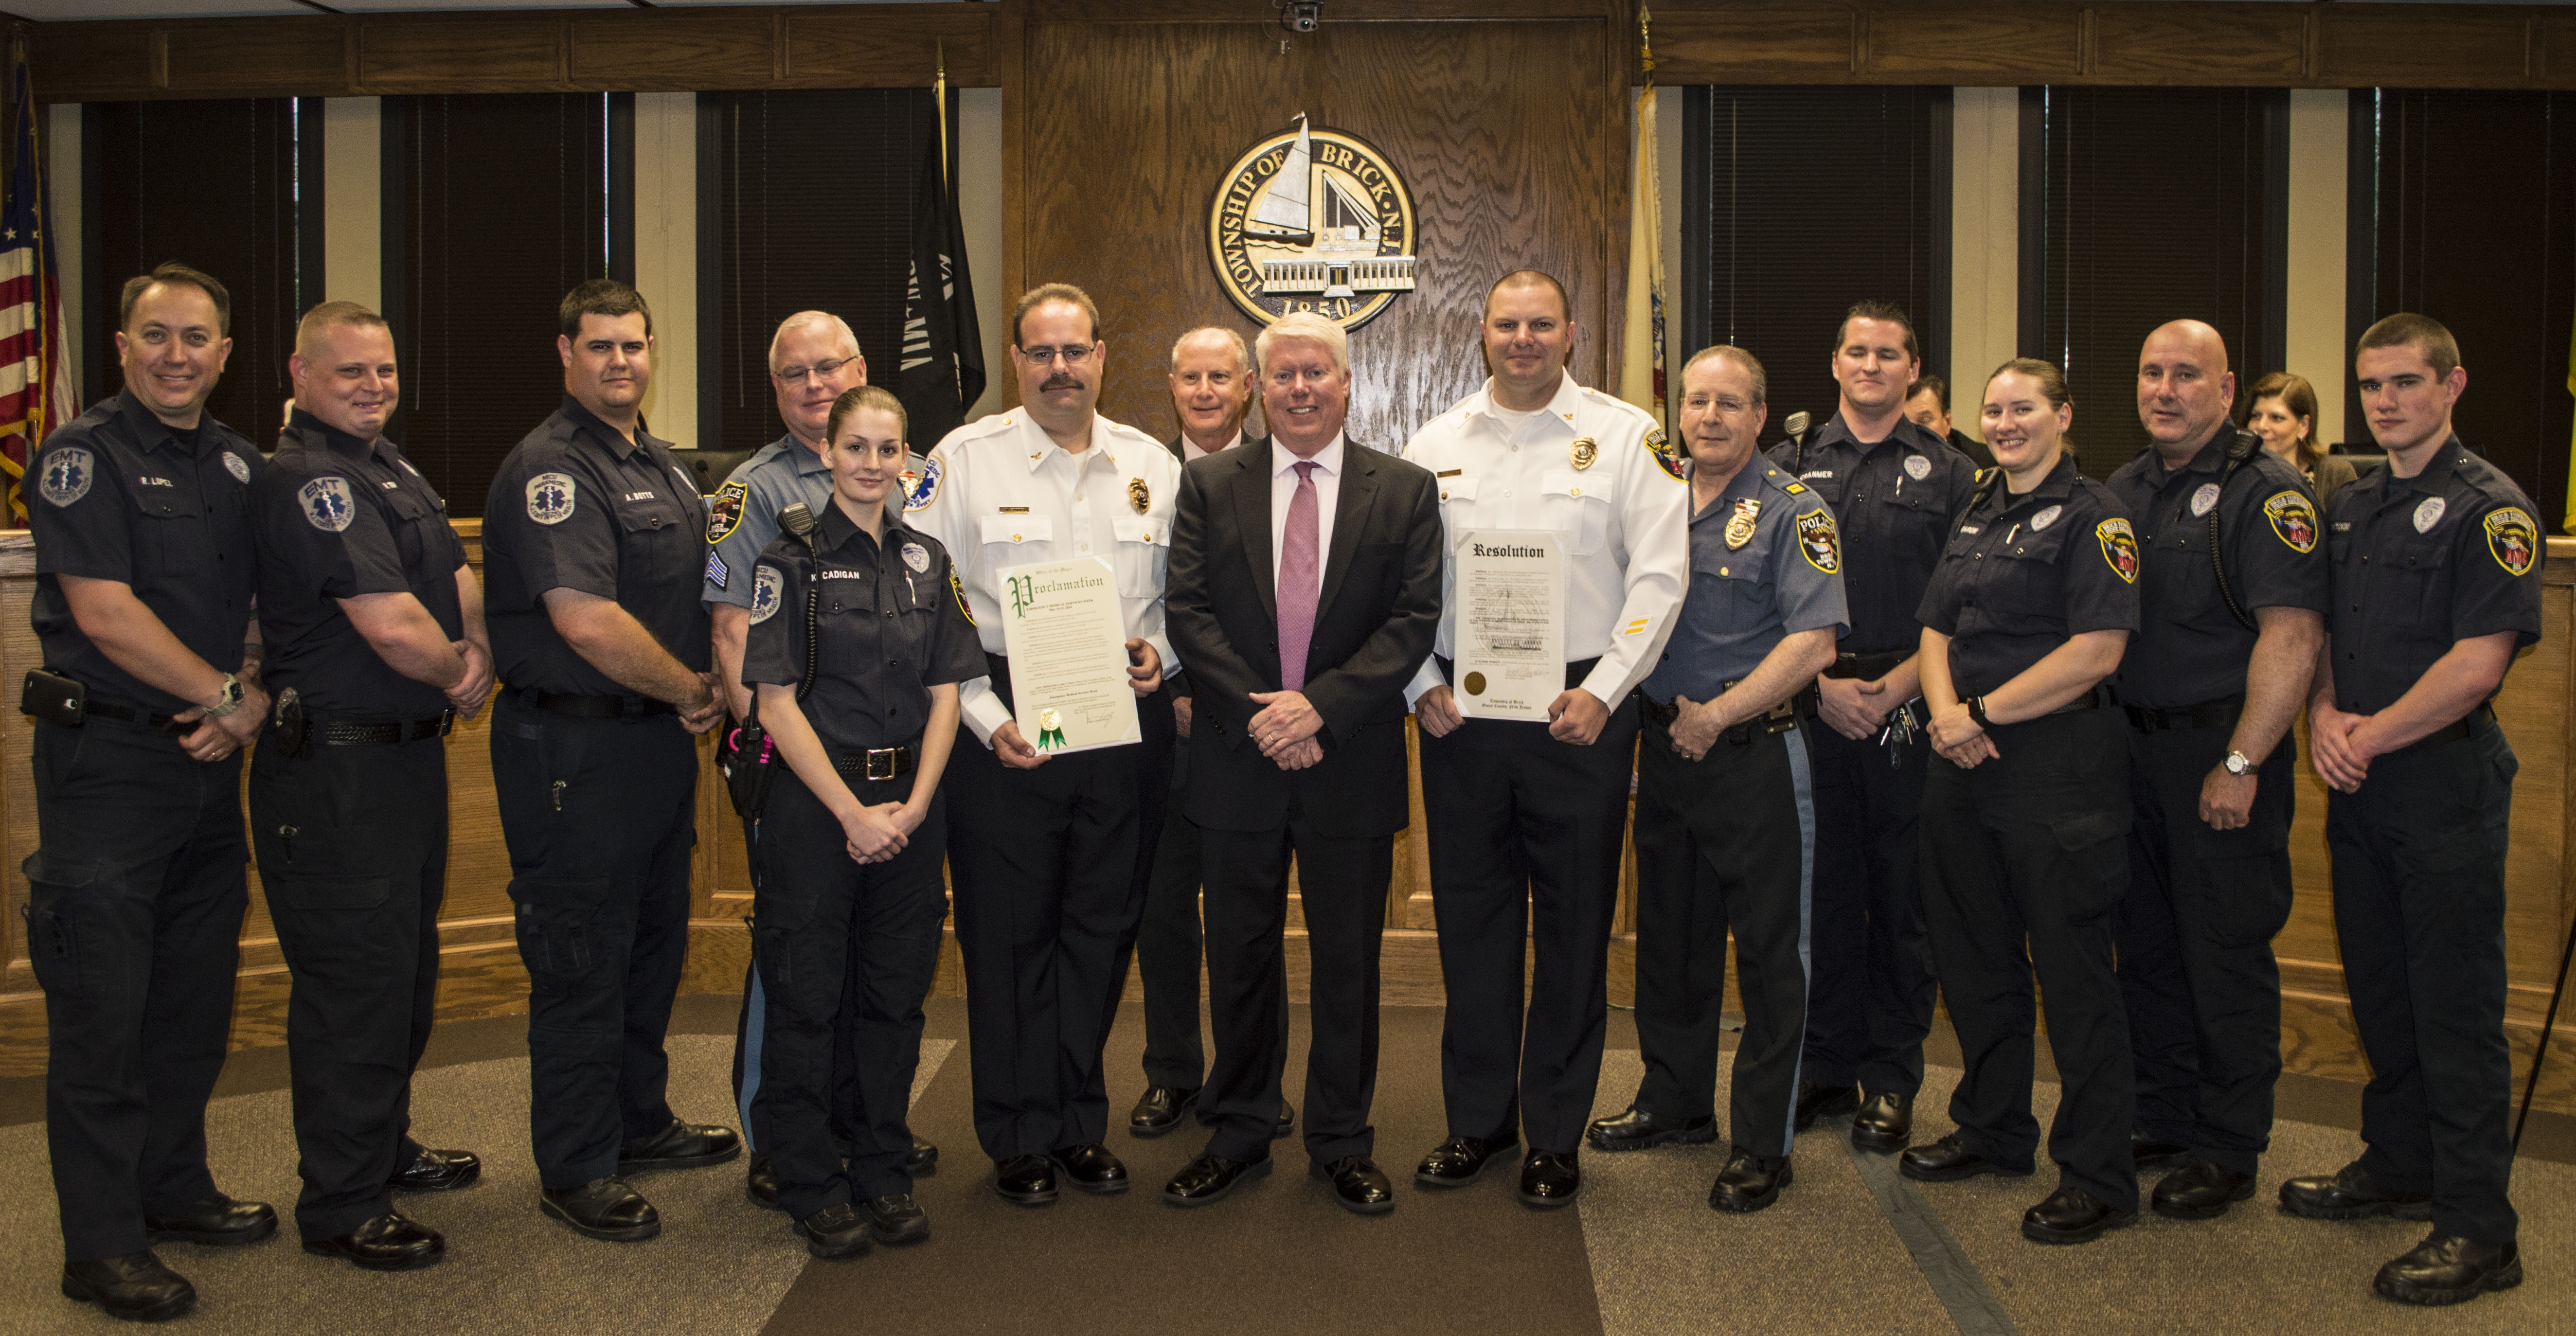 Brick Police EMS members are honored by Mayor John Ducey and township council members. (Photo: Daniel Nee)